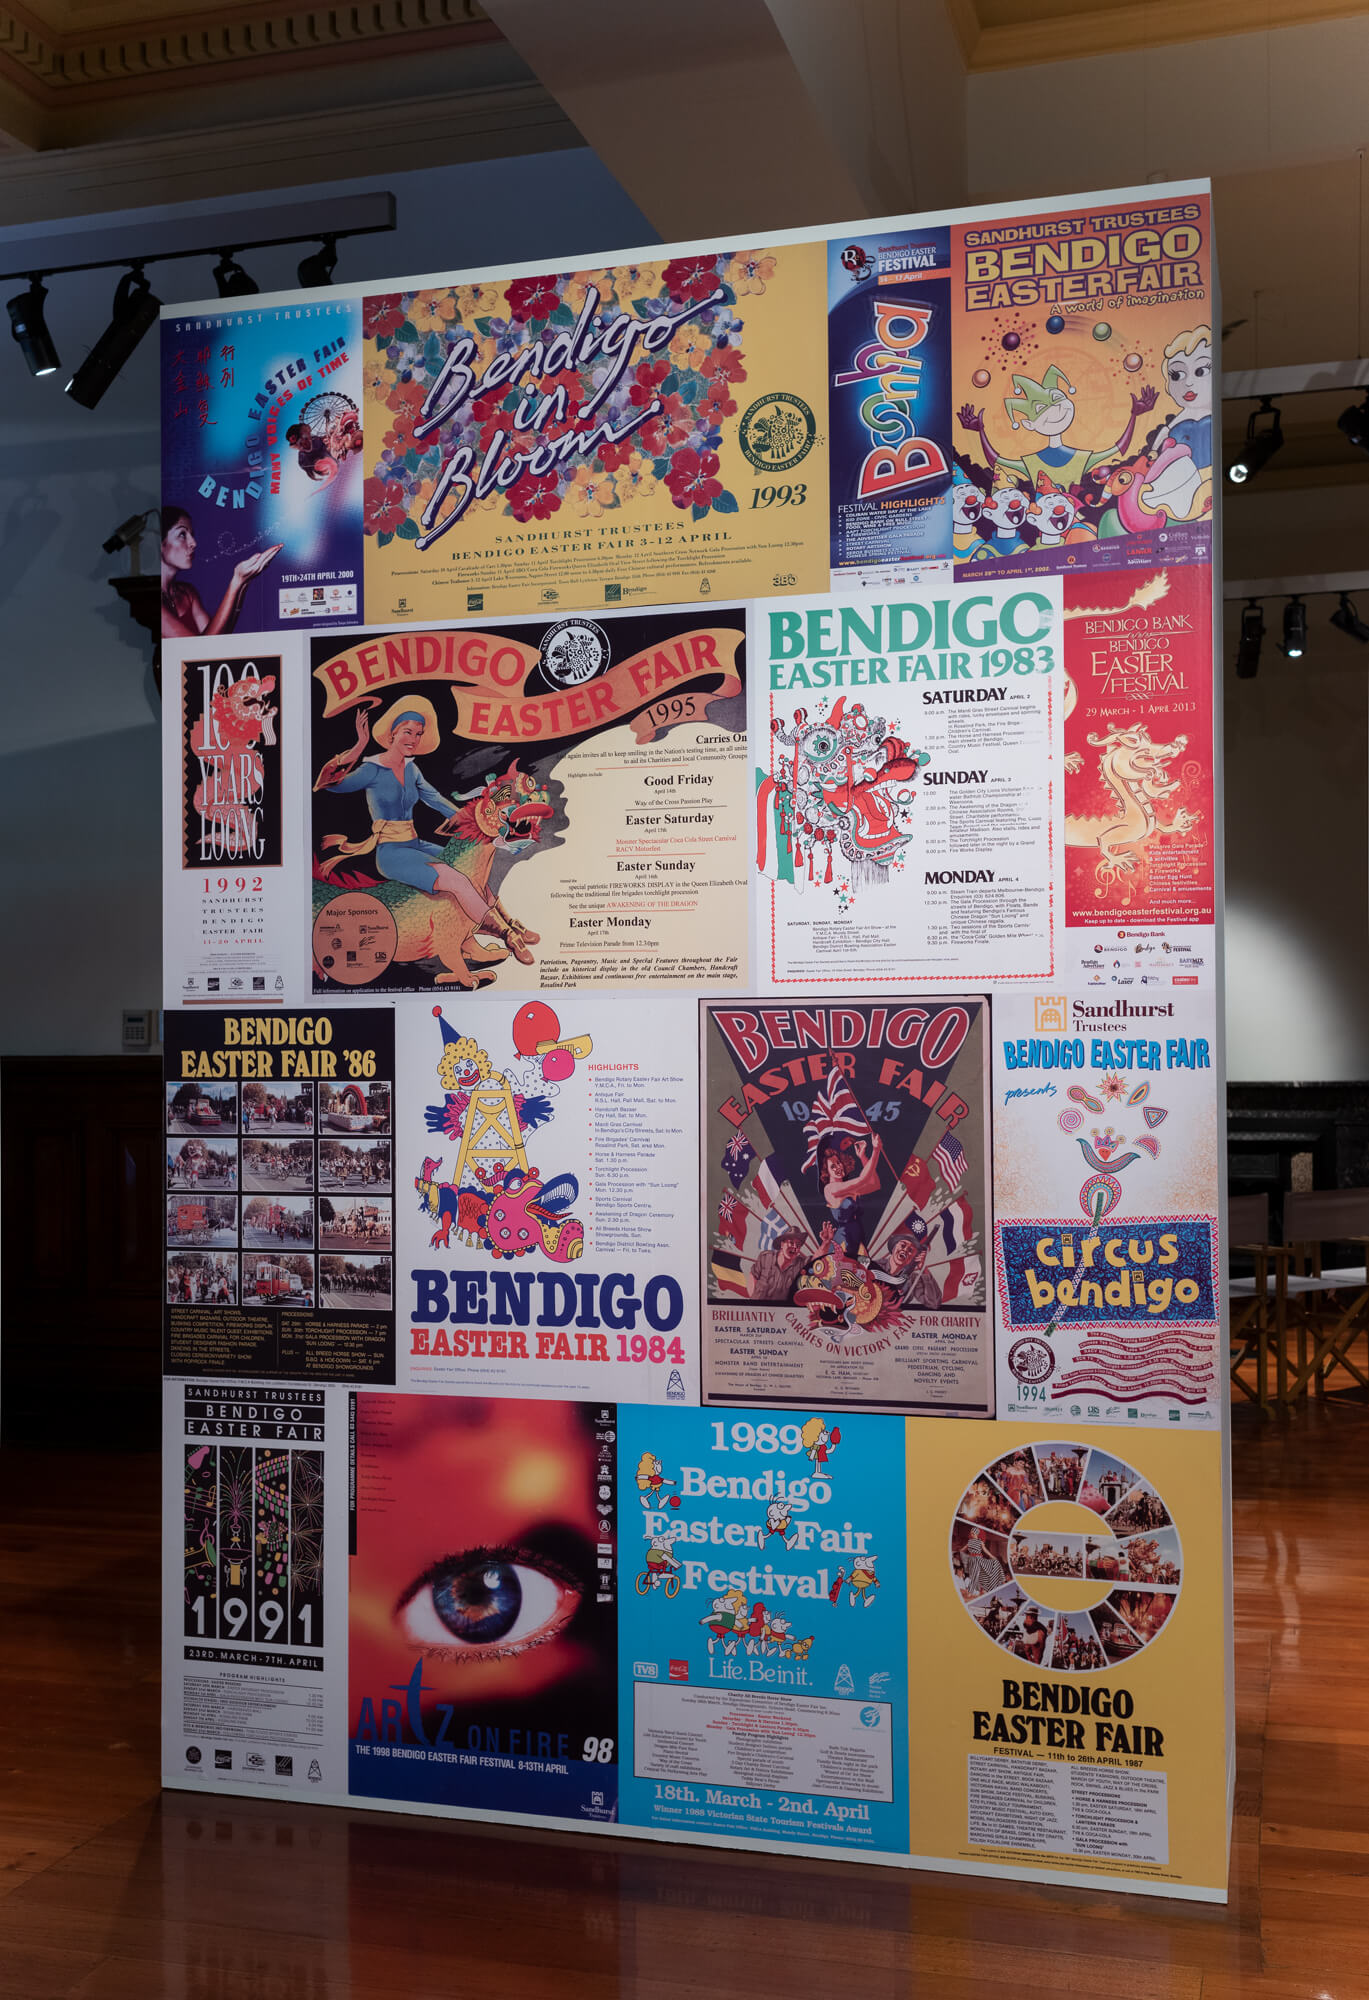 Bendigo Easter Fair promotional posters, 1945 – 2013, digital reproductions of original prints on paper. Courtesy Bendigo Easter Fair Society and Dennis O'Hoy. Photograph: Ian Hill